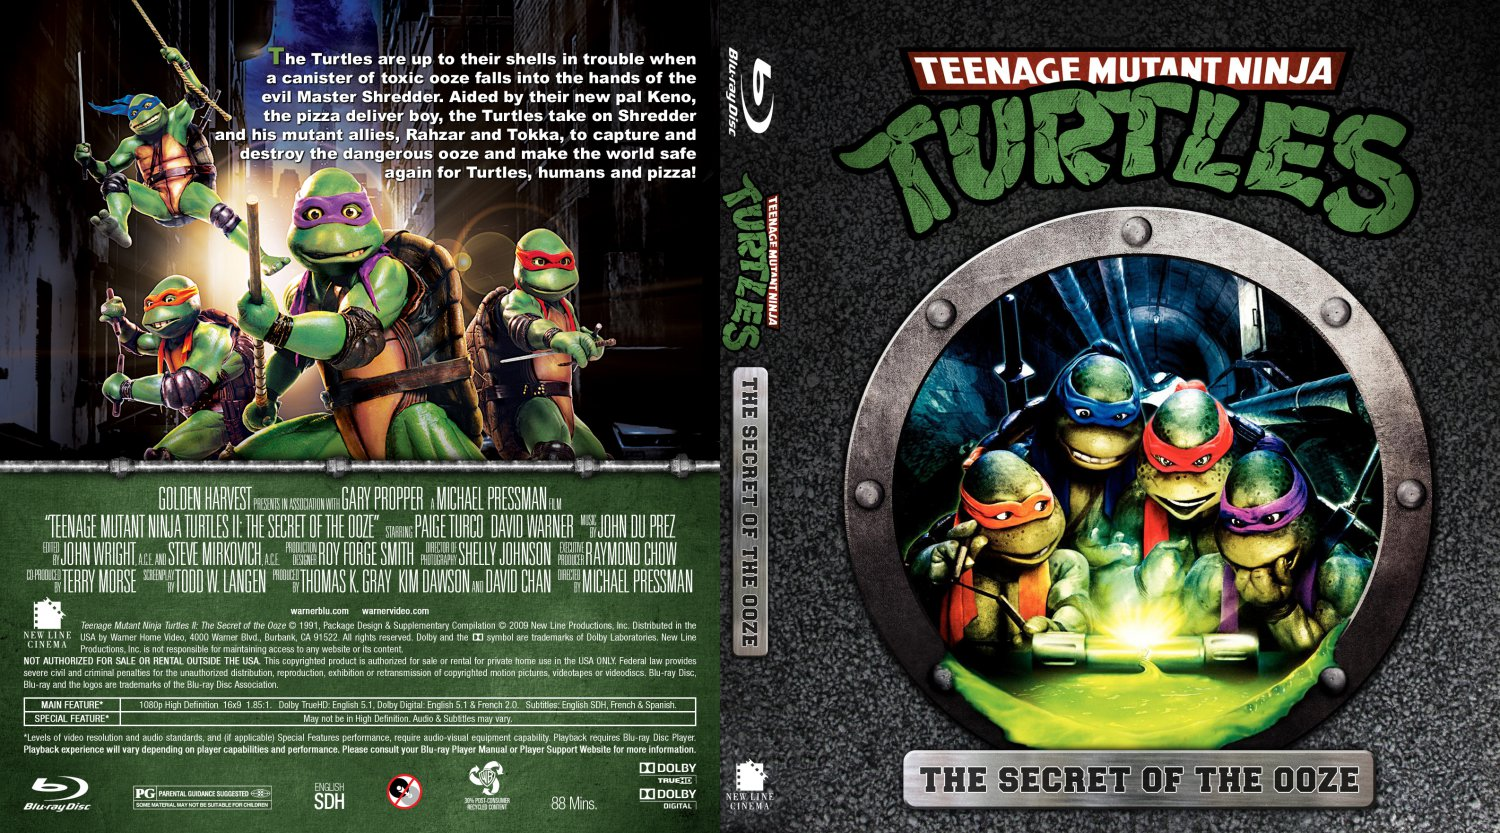 Teenage Mutant Ninja Turtles 2 1991 dvd box art